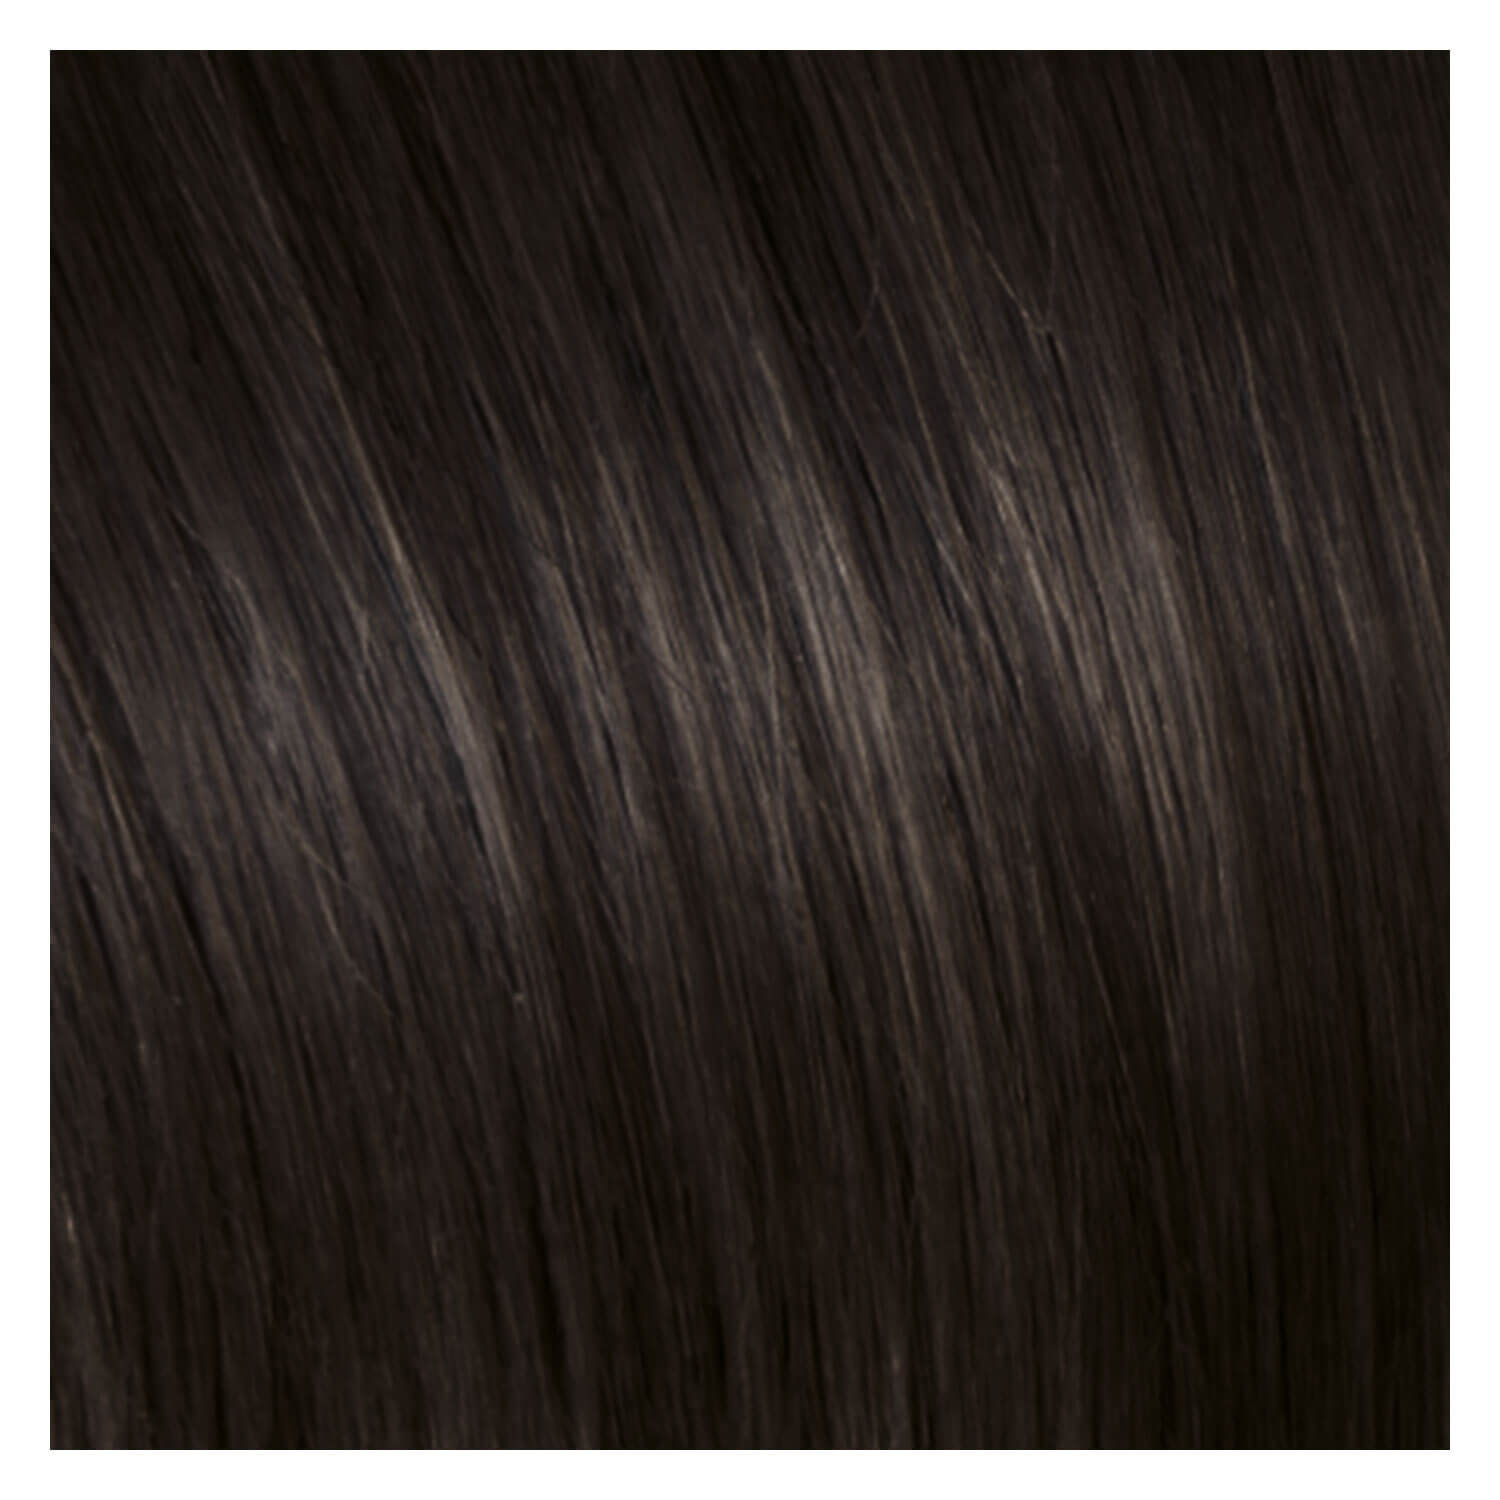 SHE Clip In-System Hair Extensions - 4 Kastanienbraun 50/55cm